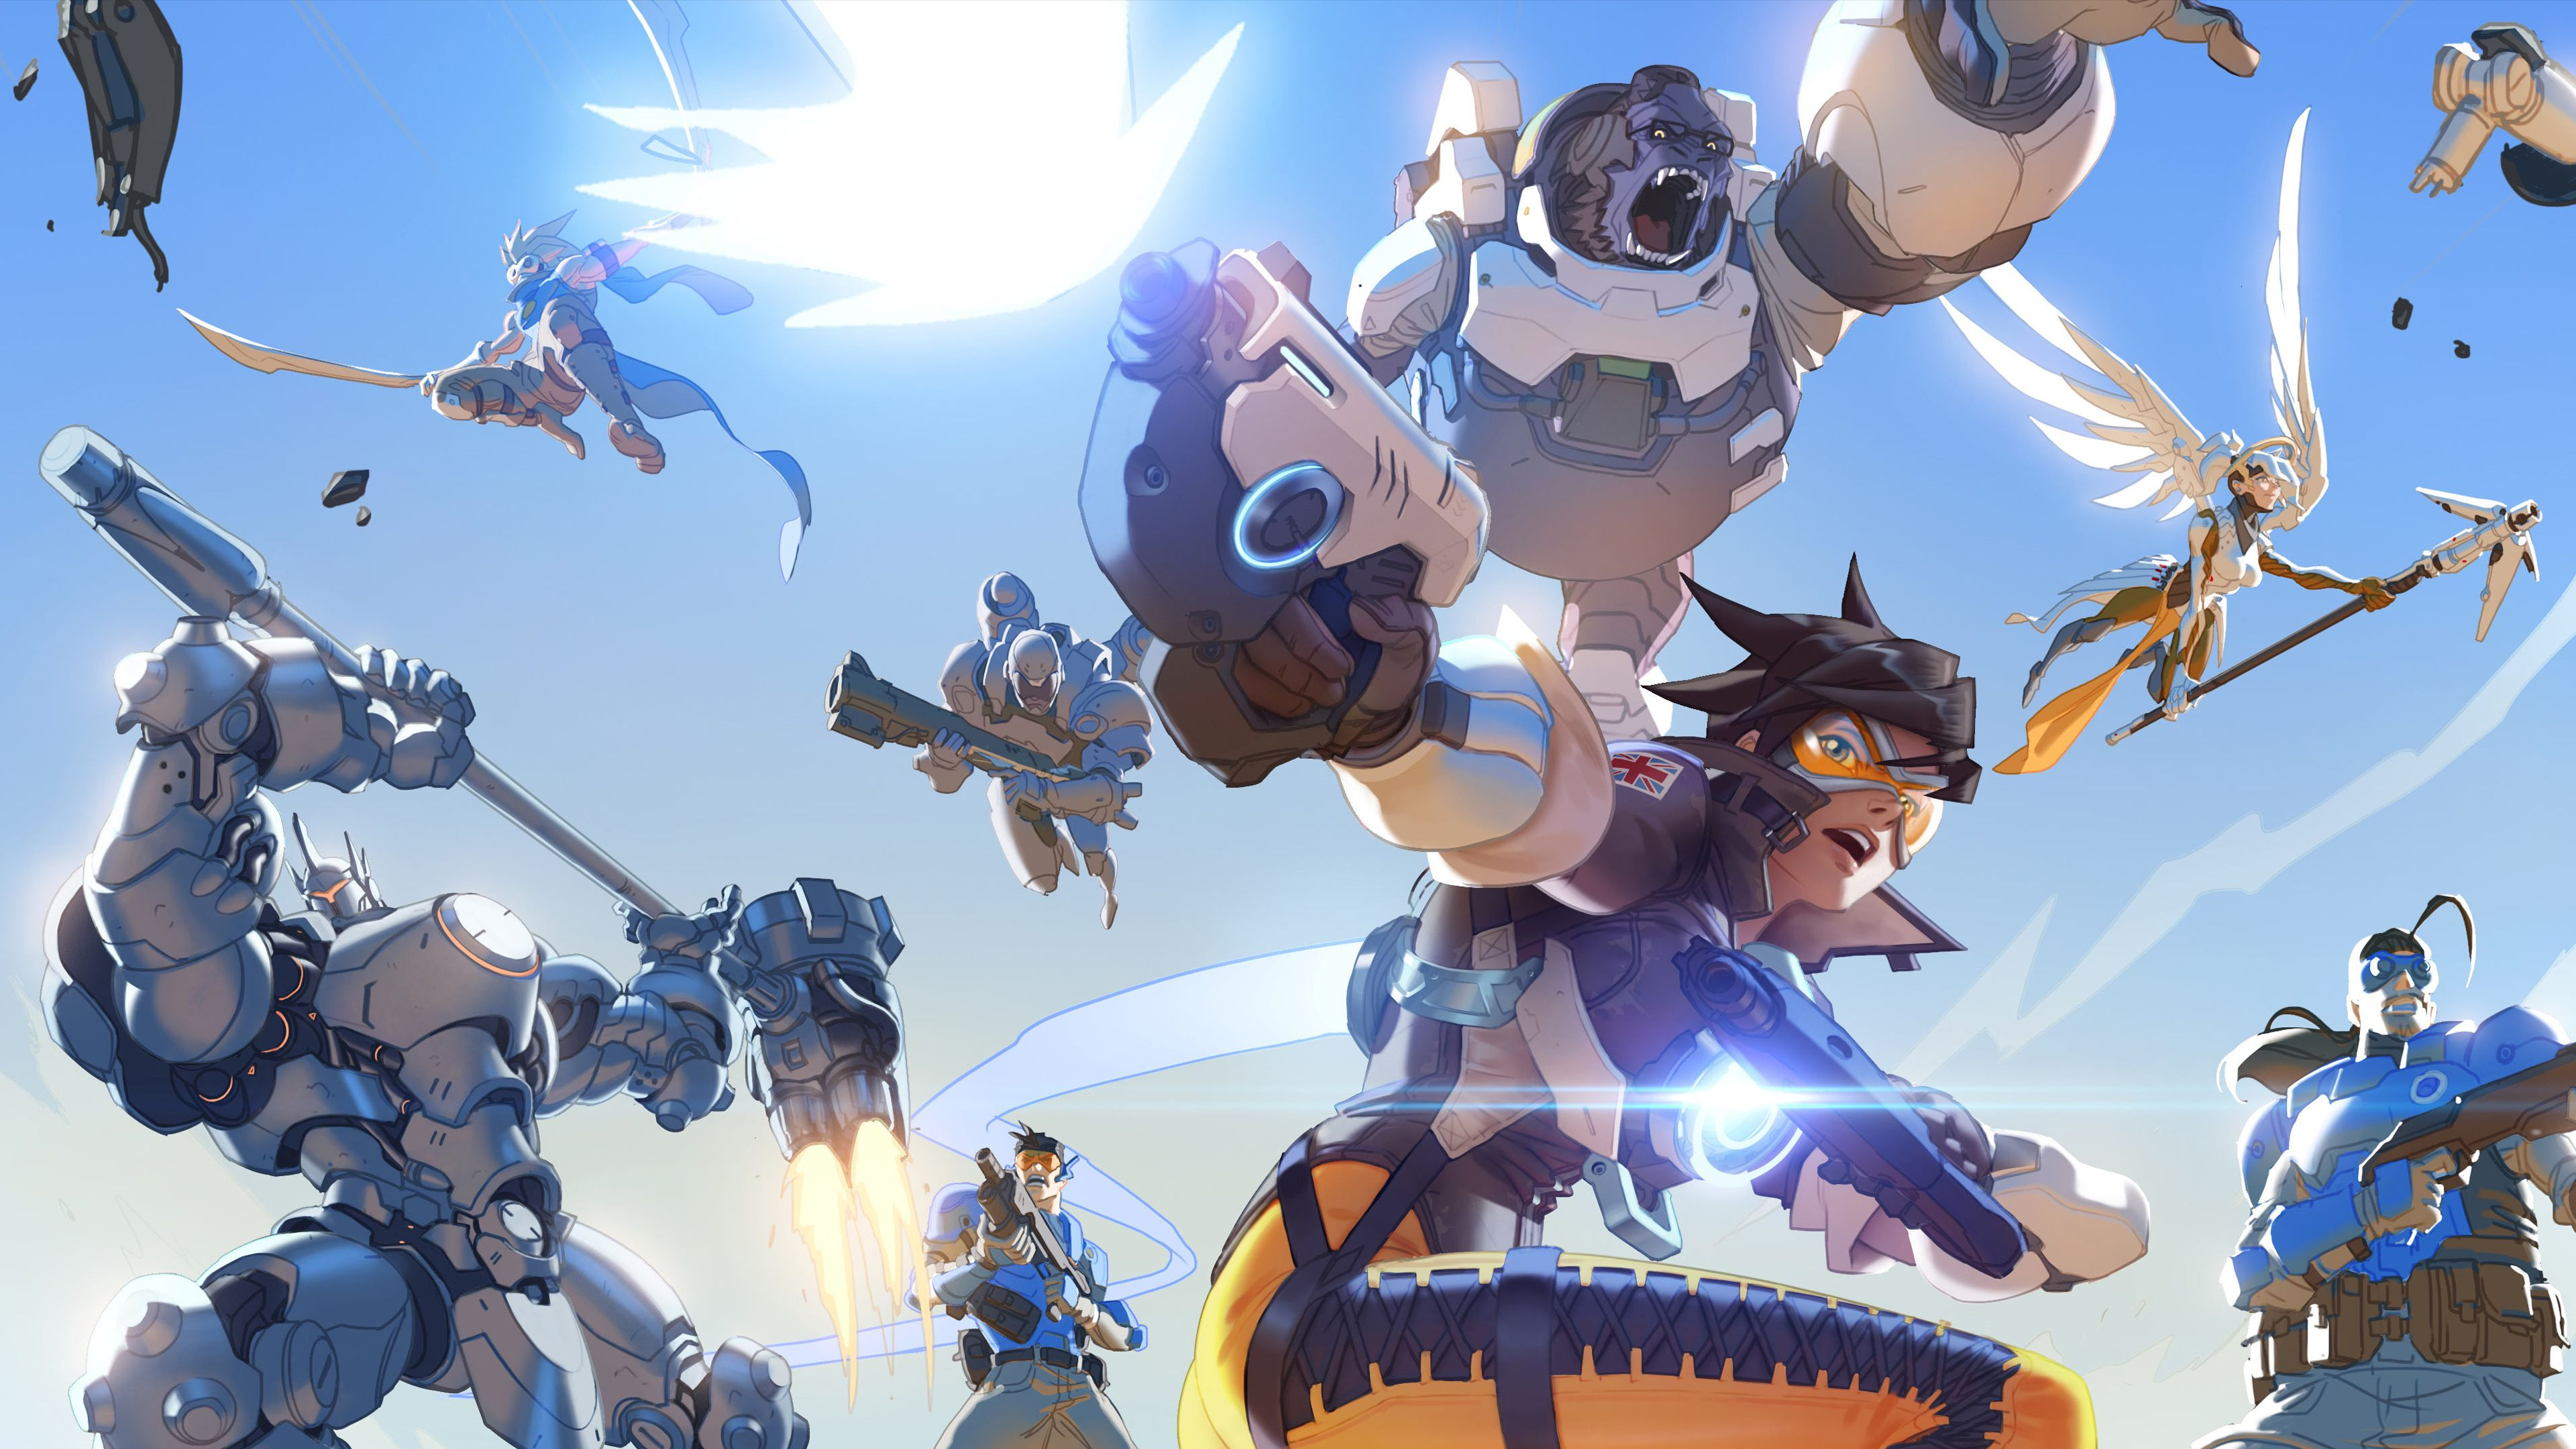 Overwatch wallpaper Overwatch wallpapers, Overwatch